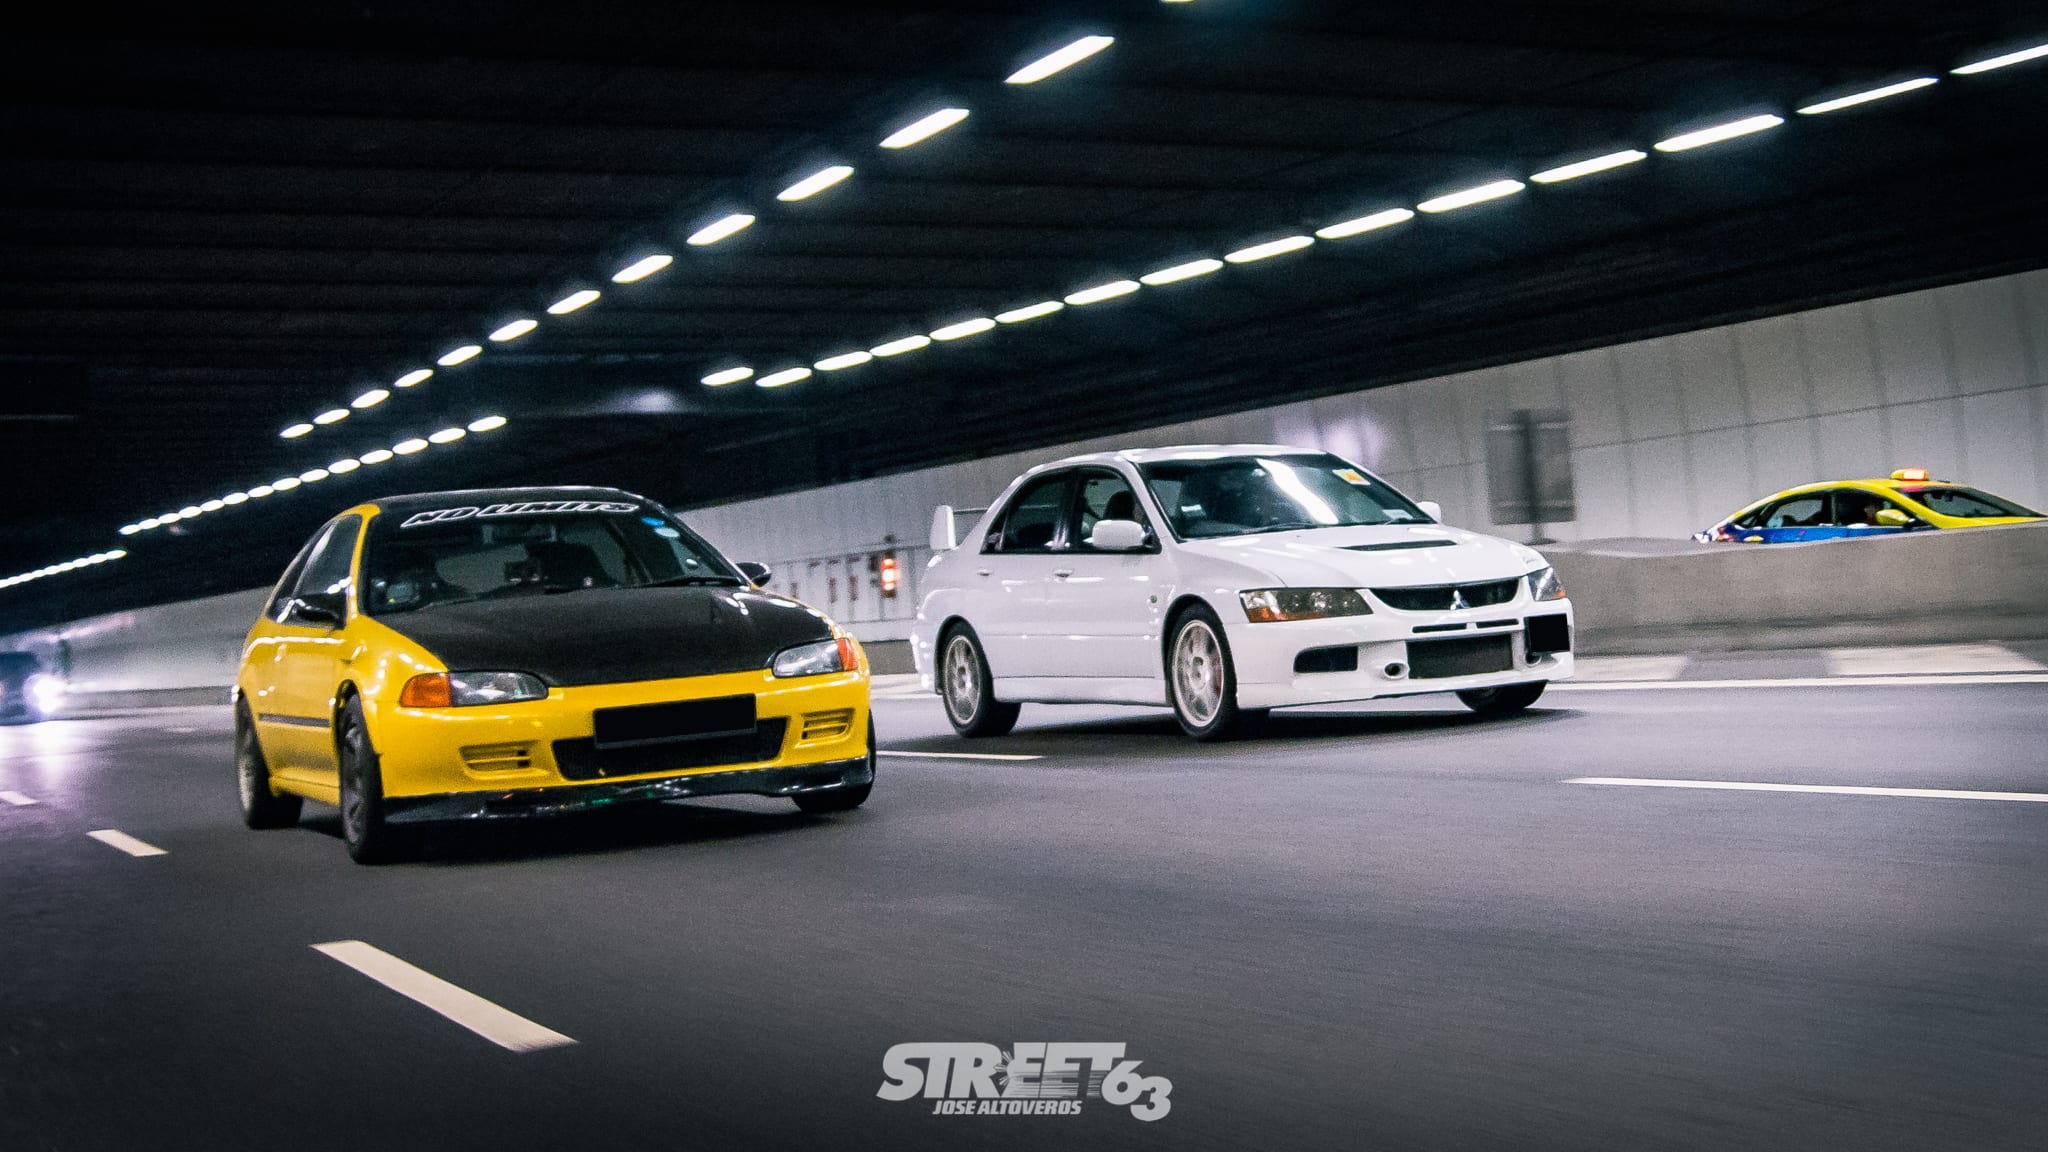 A Taste of the **Singapore Tuning Scene**